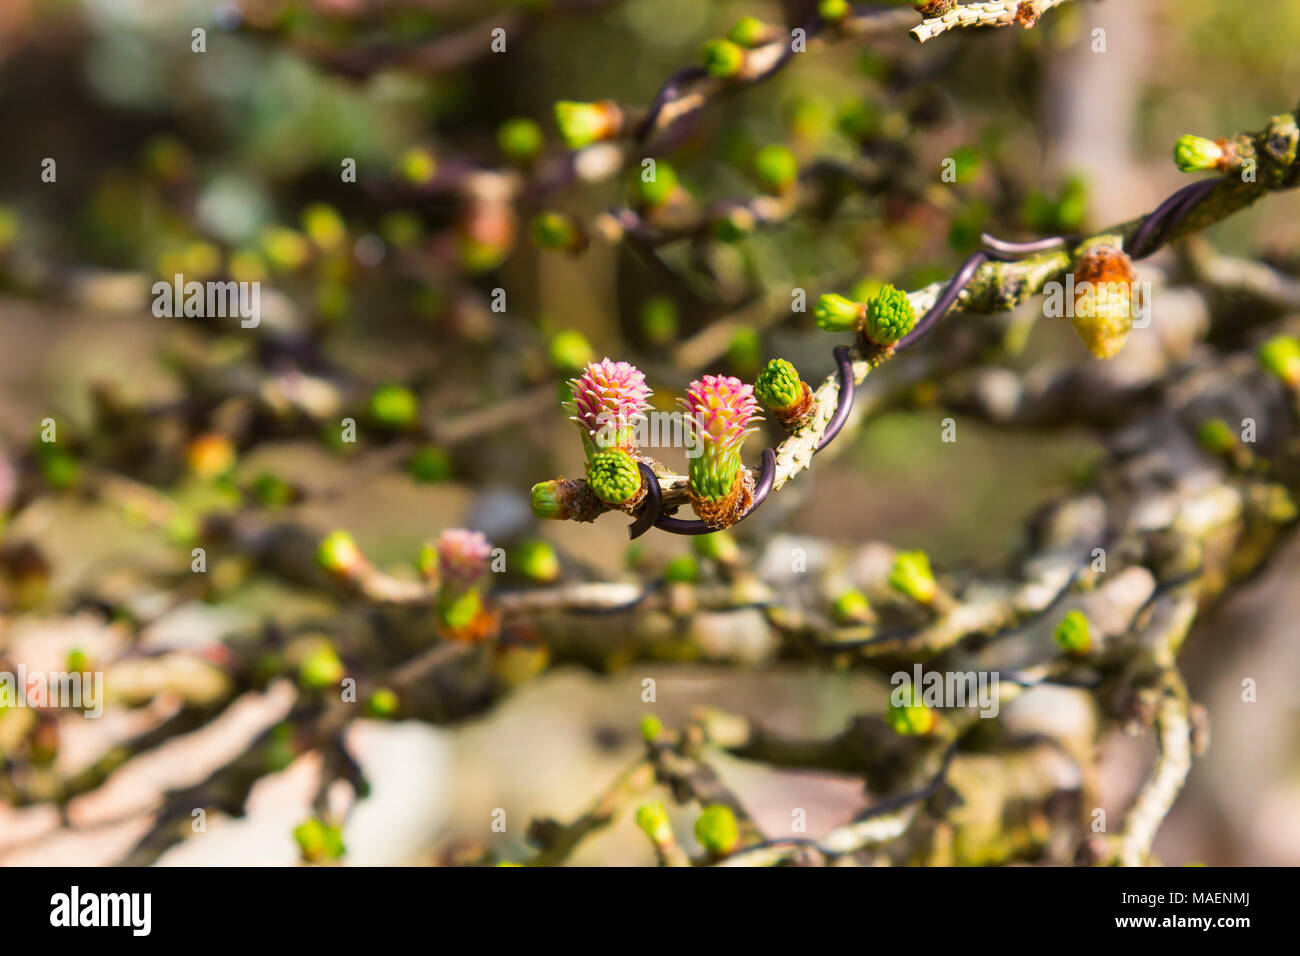 Tiny flowers on a branch of a European Larch bonsai tree that has been wired recently - Stock Image